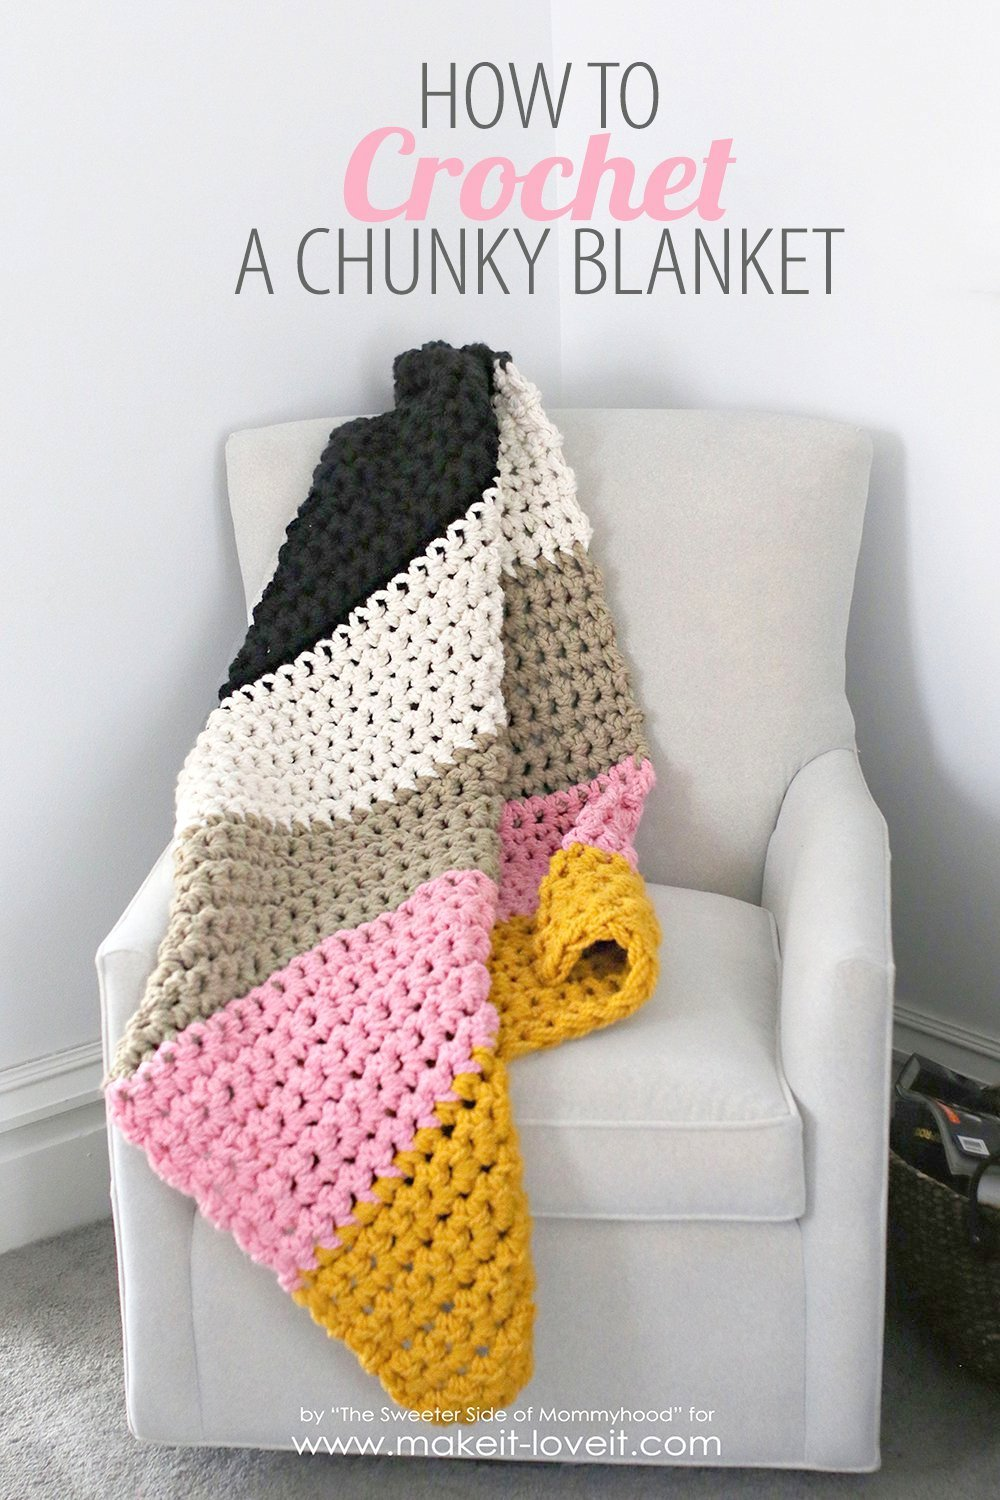 How to Crochet a Chunky Blanket (…an affordable beginner project!)